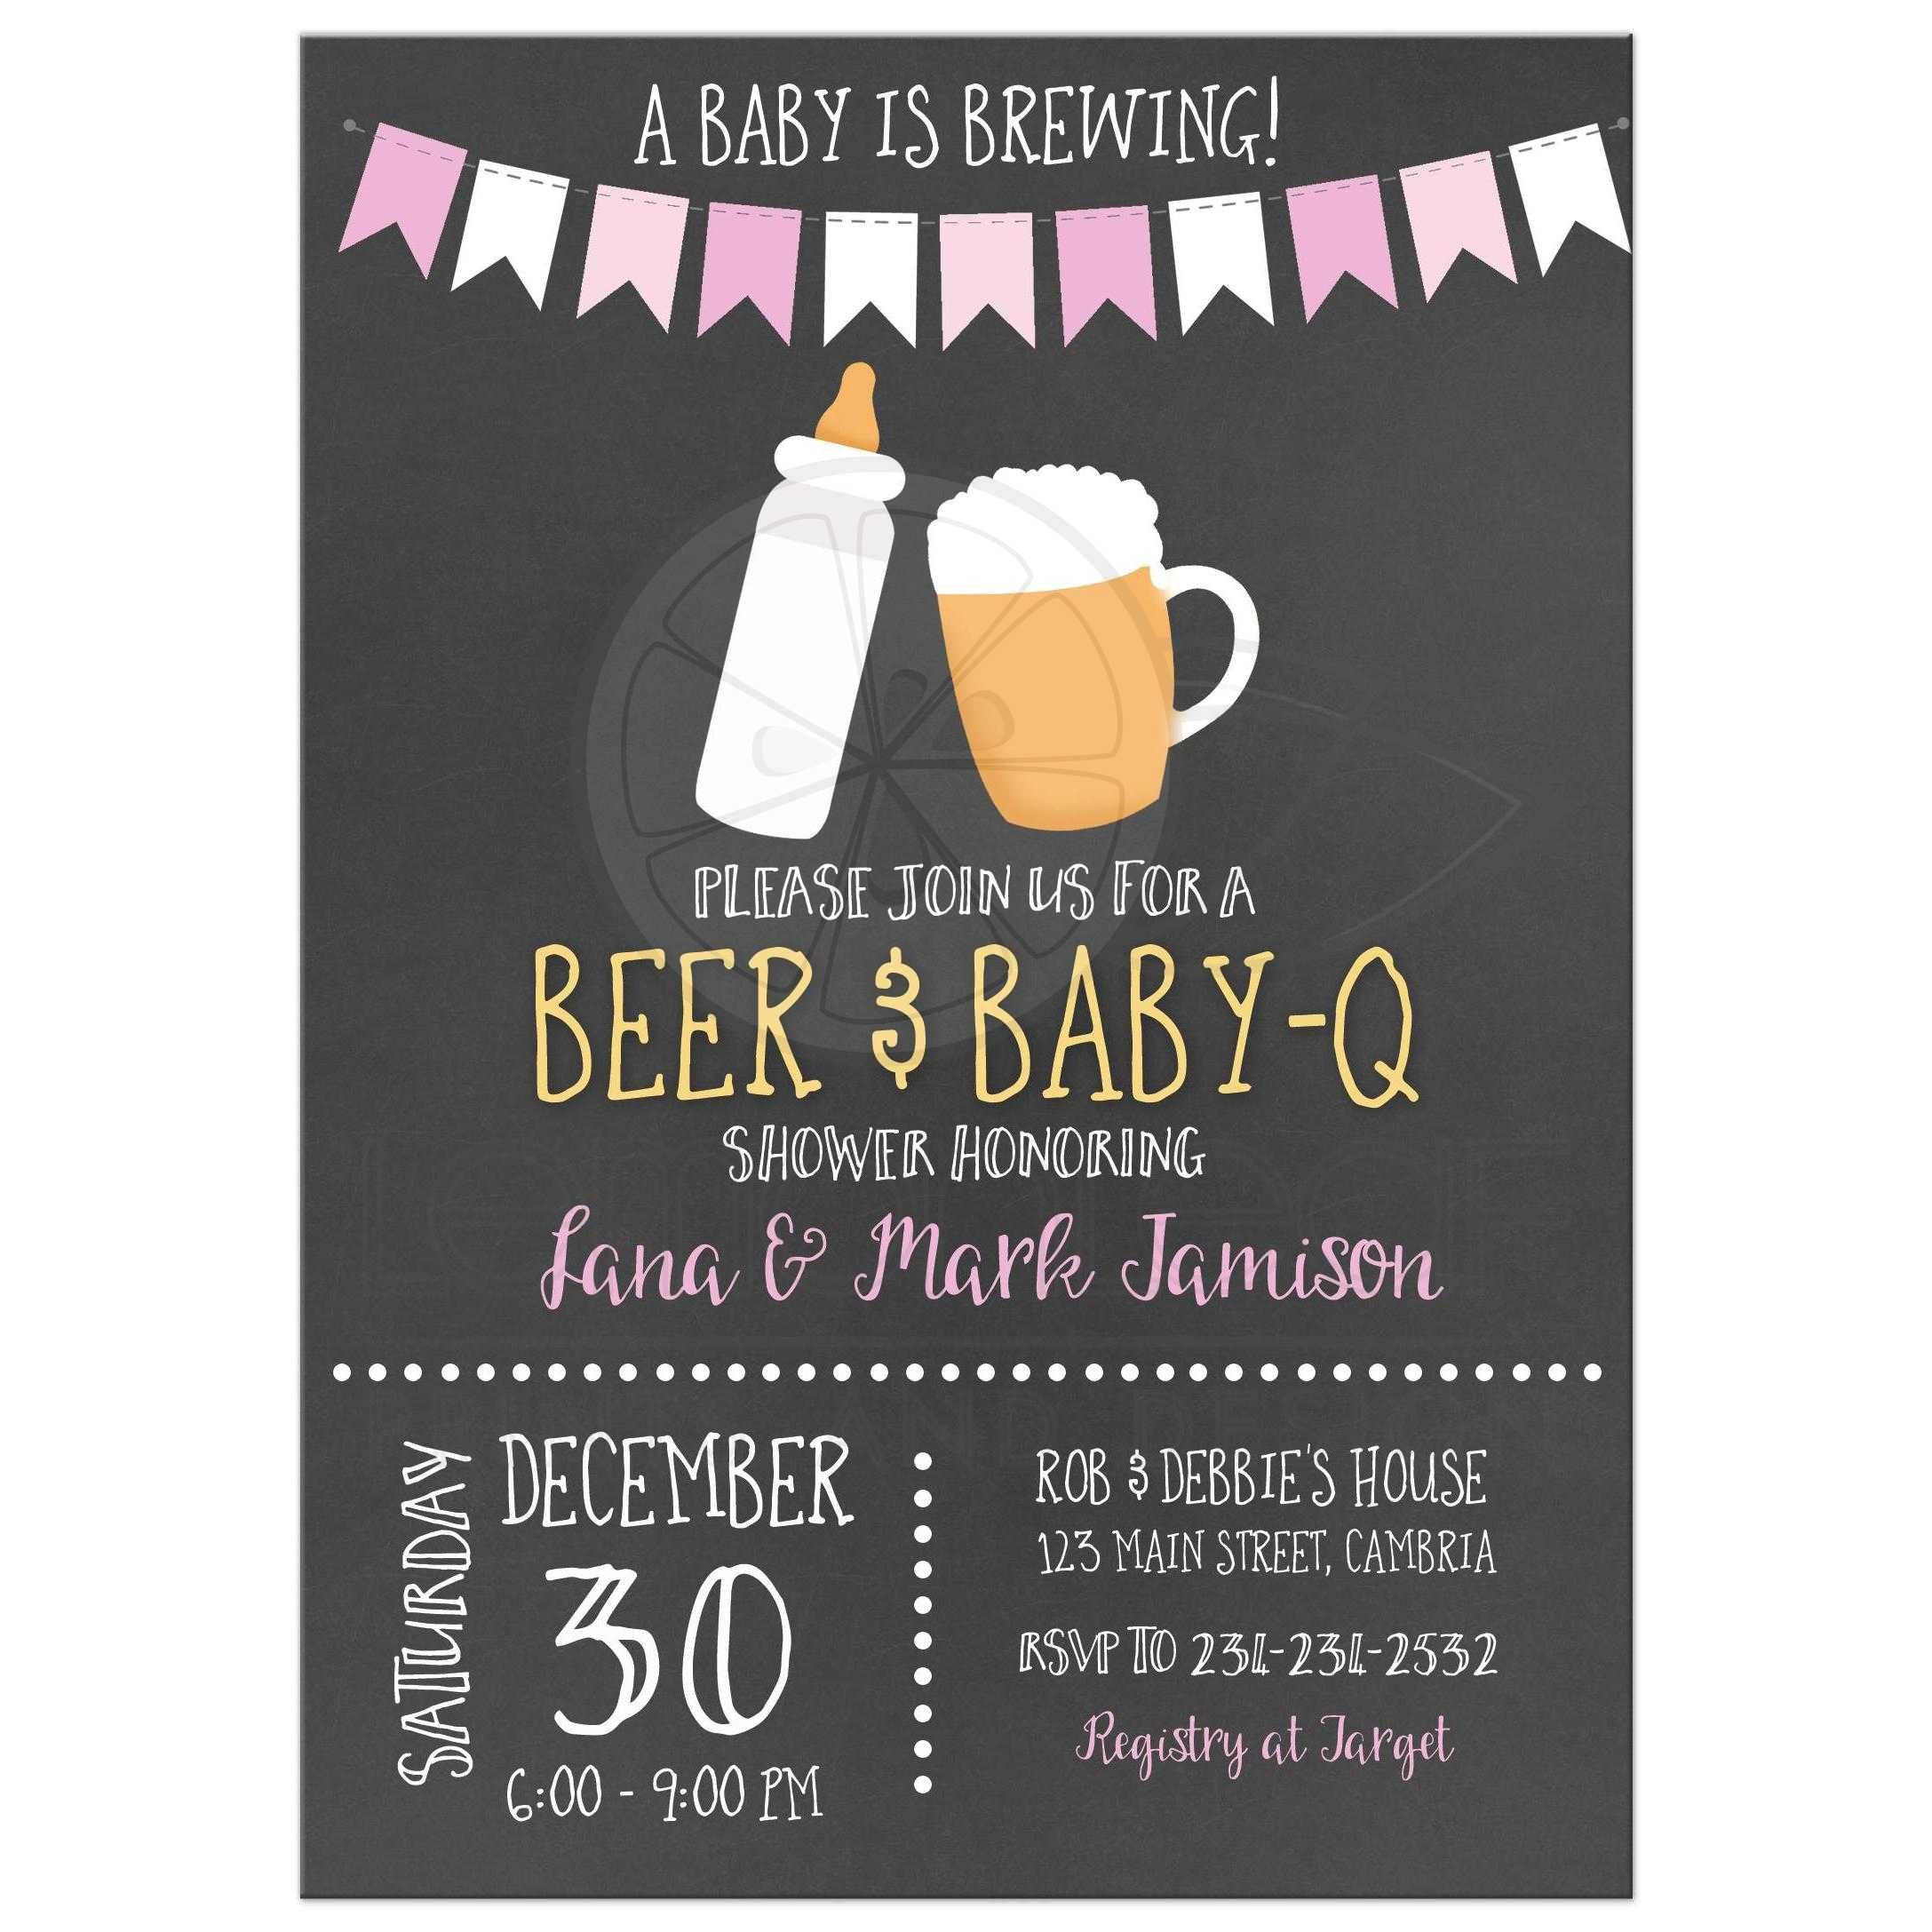 Baby is Brewing BBQ Baby-Q Co-Ed Chalkboard Baby Shower Invitations ...